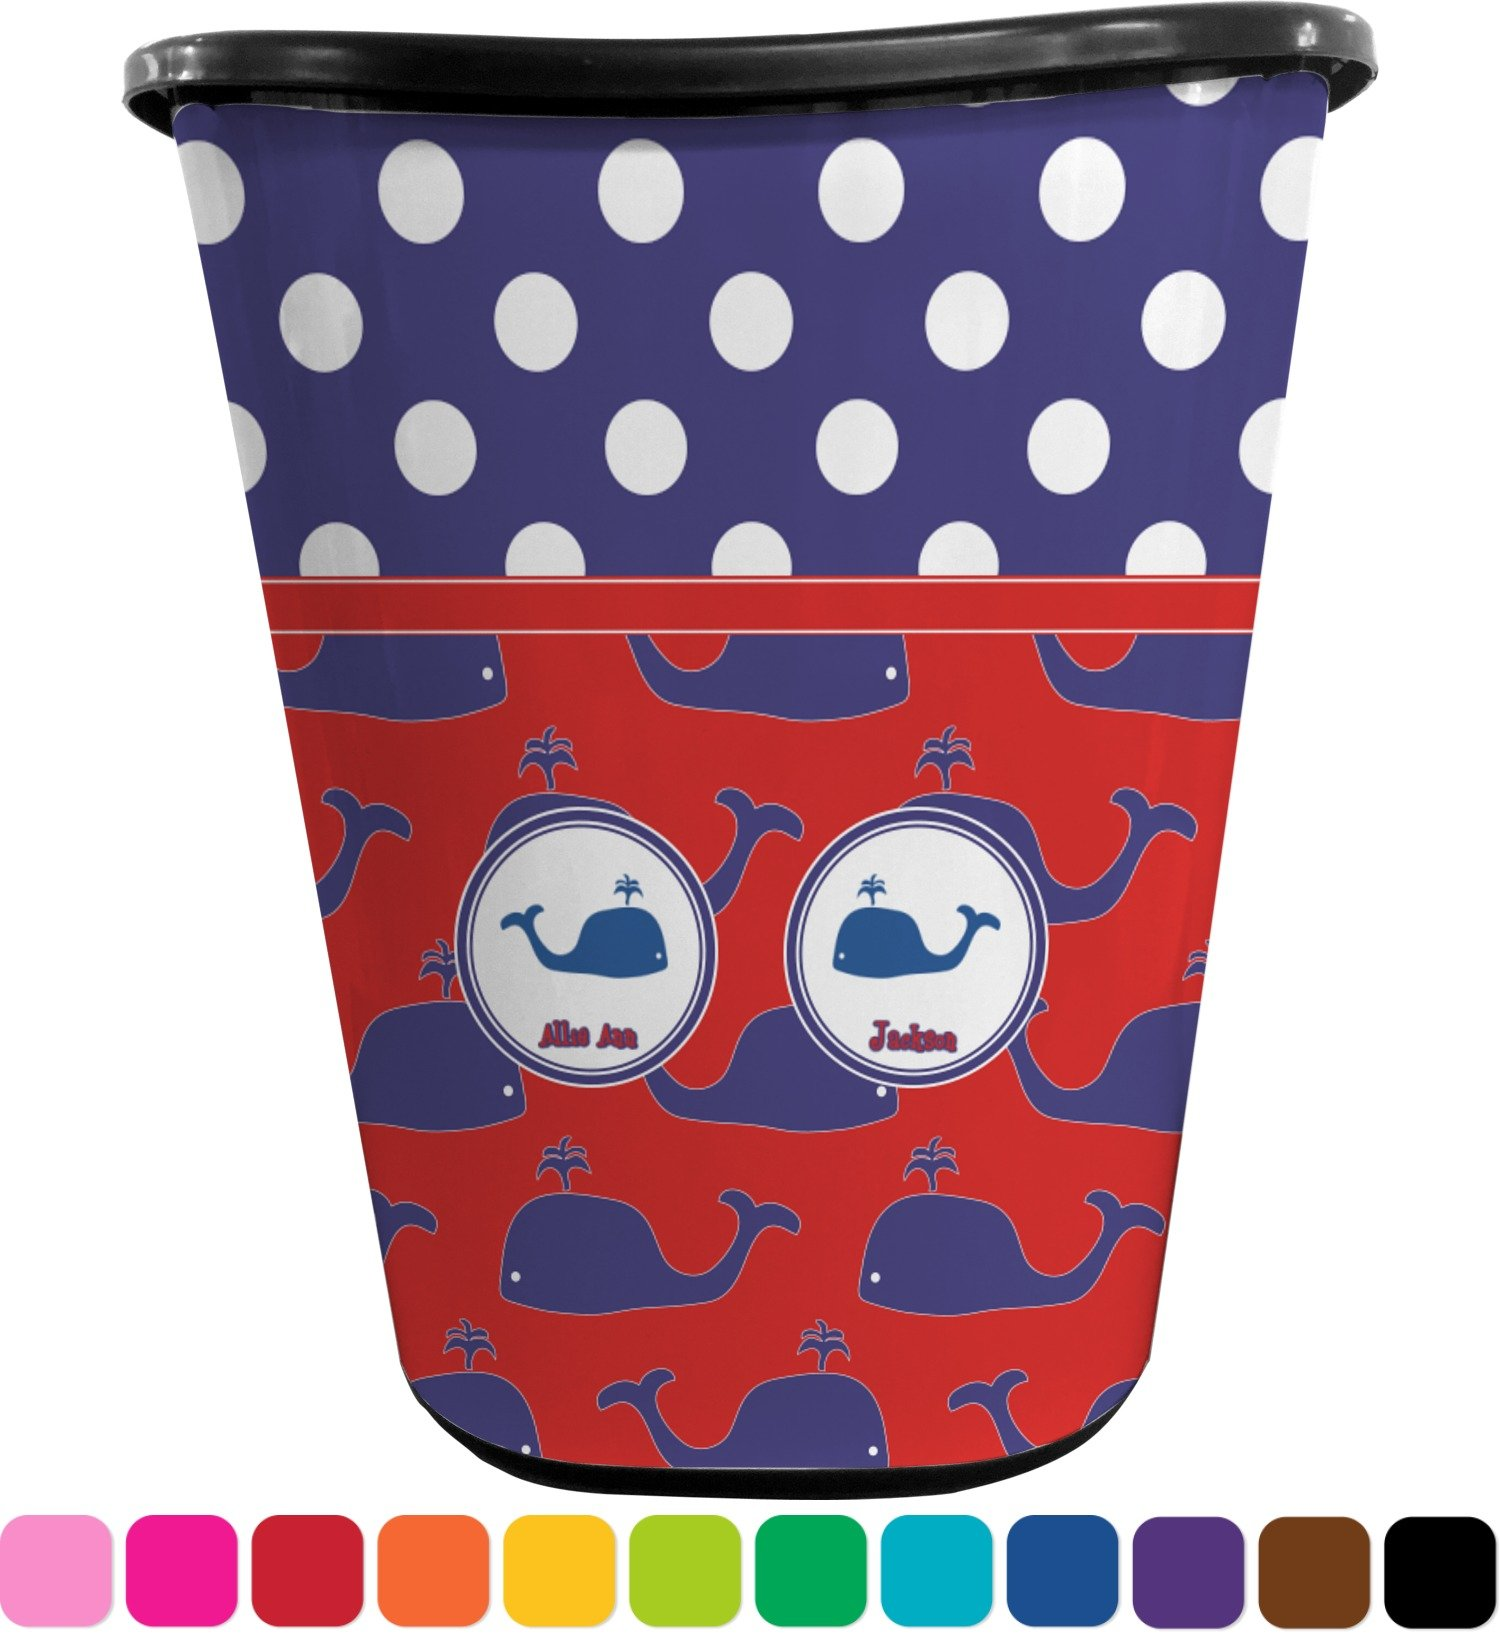 RNK Shops Whale Waste Basket - Double Sided (Black) (Personalized)